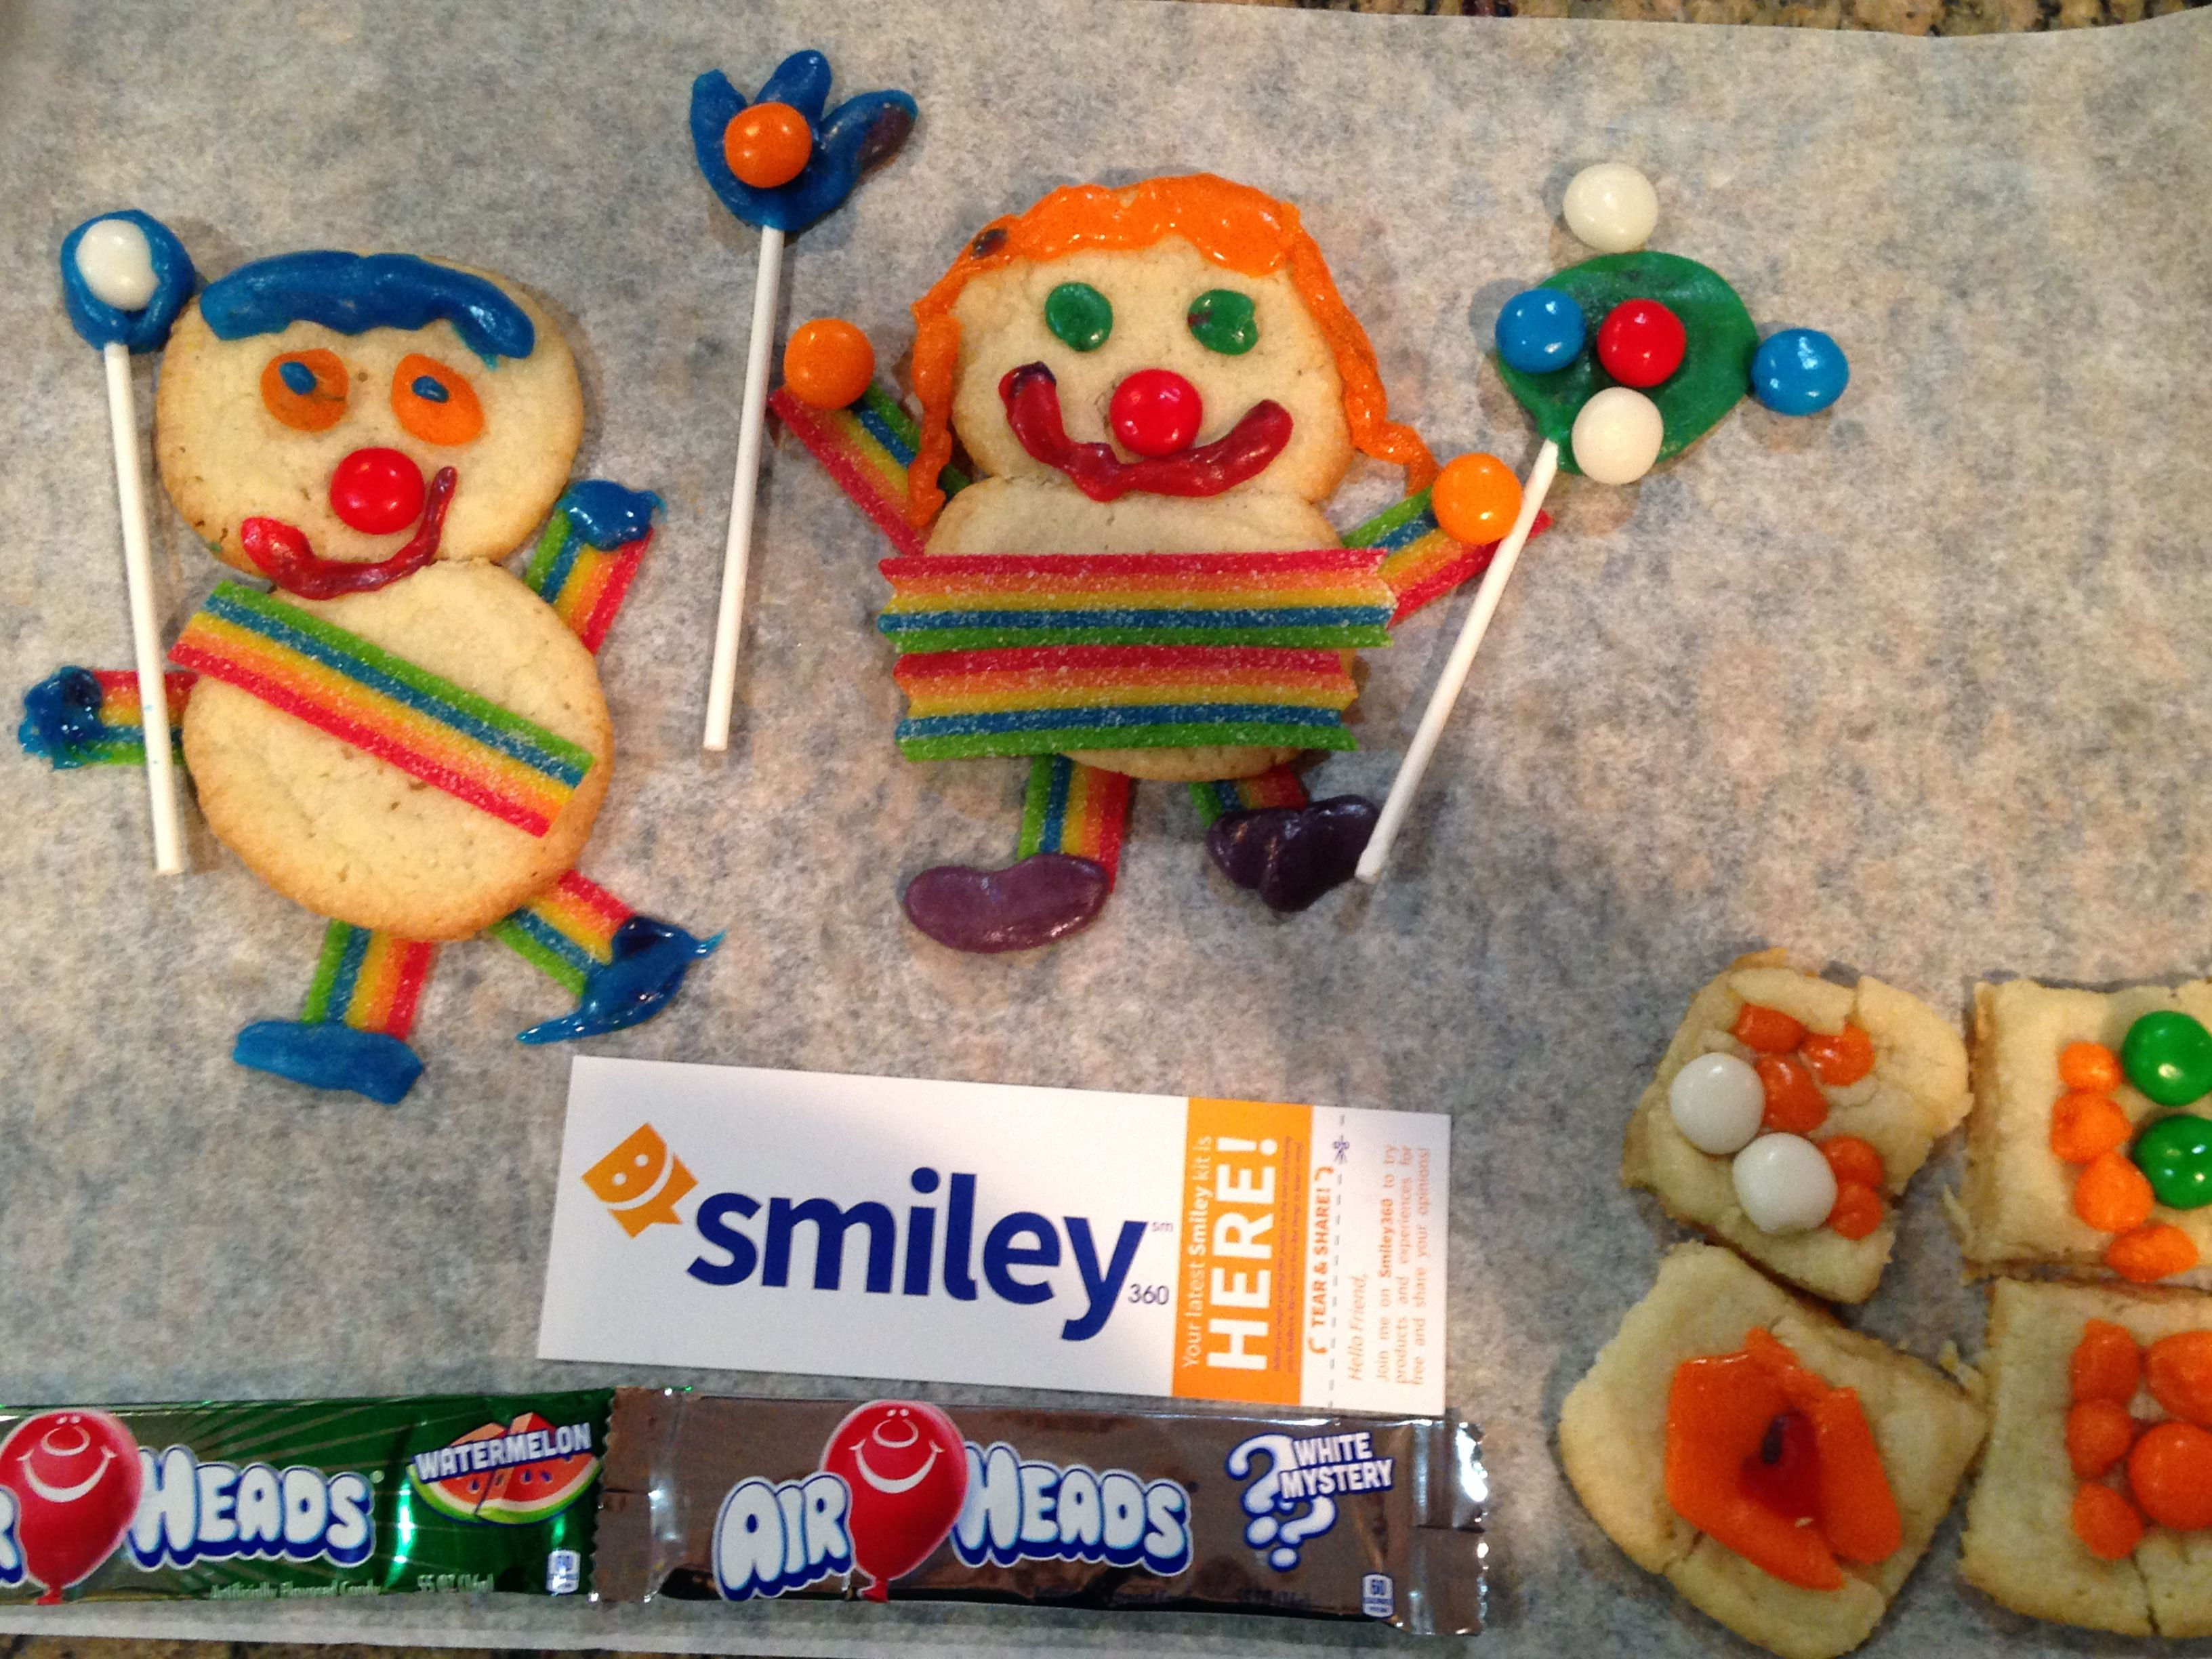 Airheads Snowman And Pizza Smiley 360 Free Samp Energen Oatmilk Mixbry10scx24g